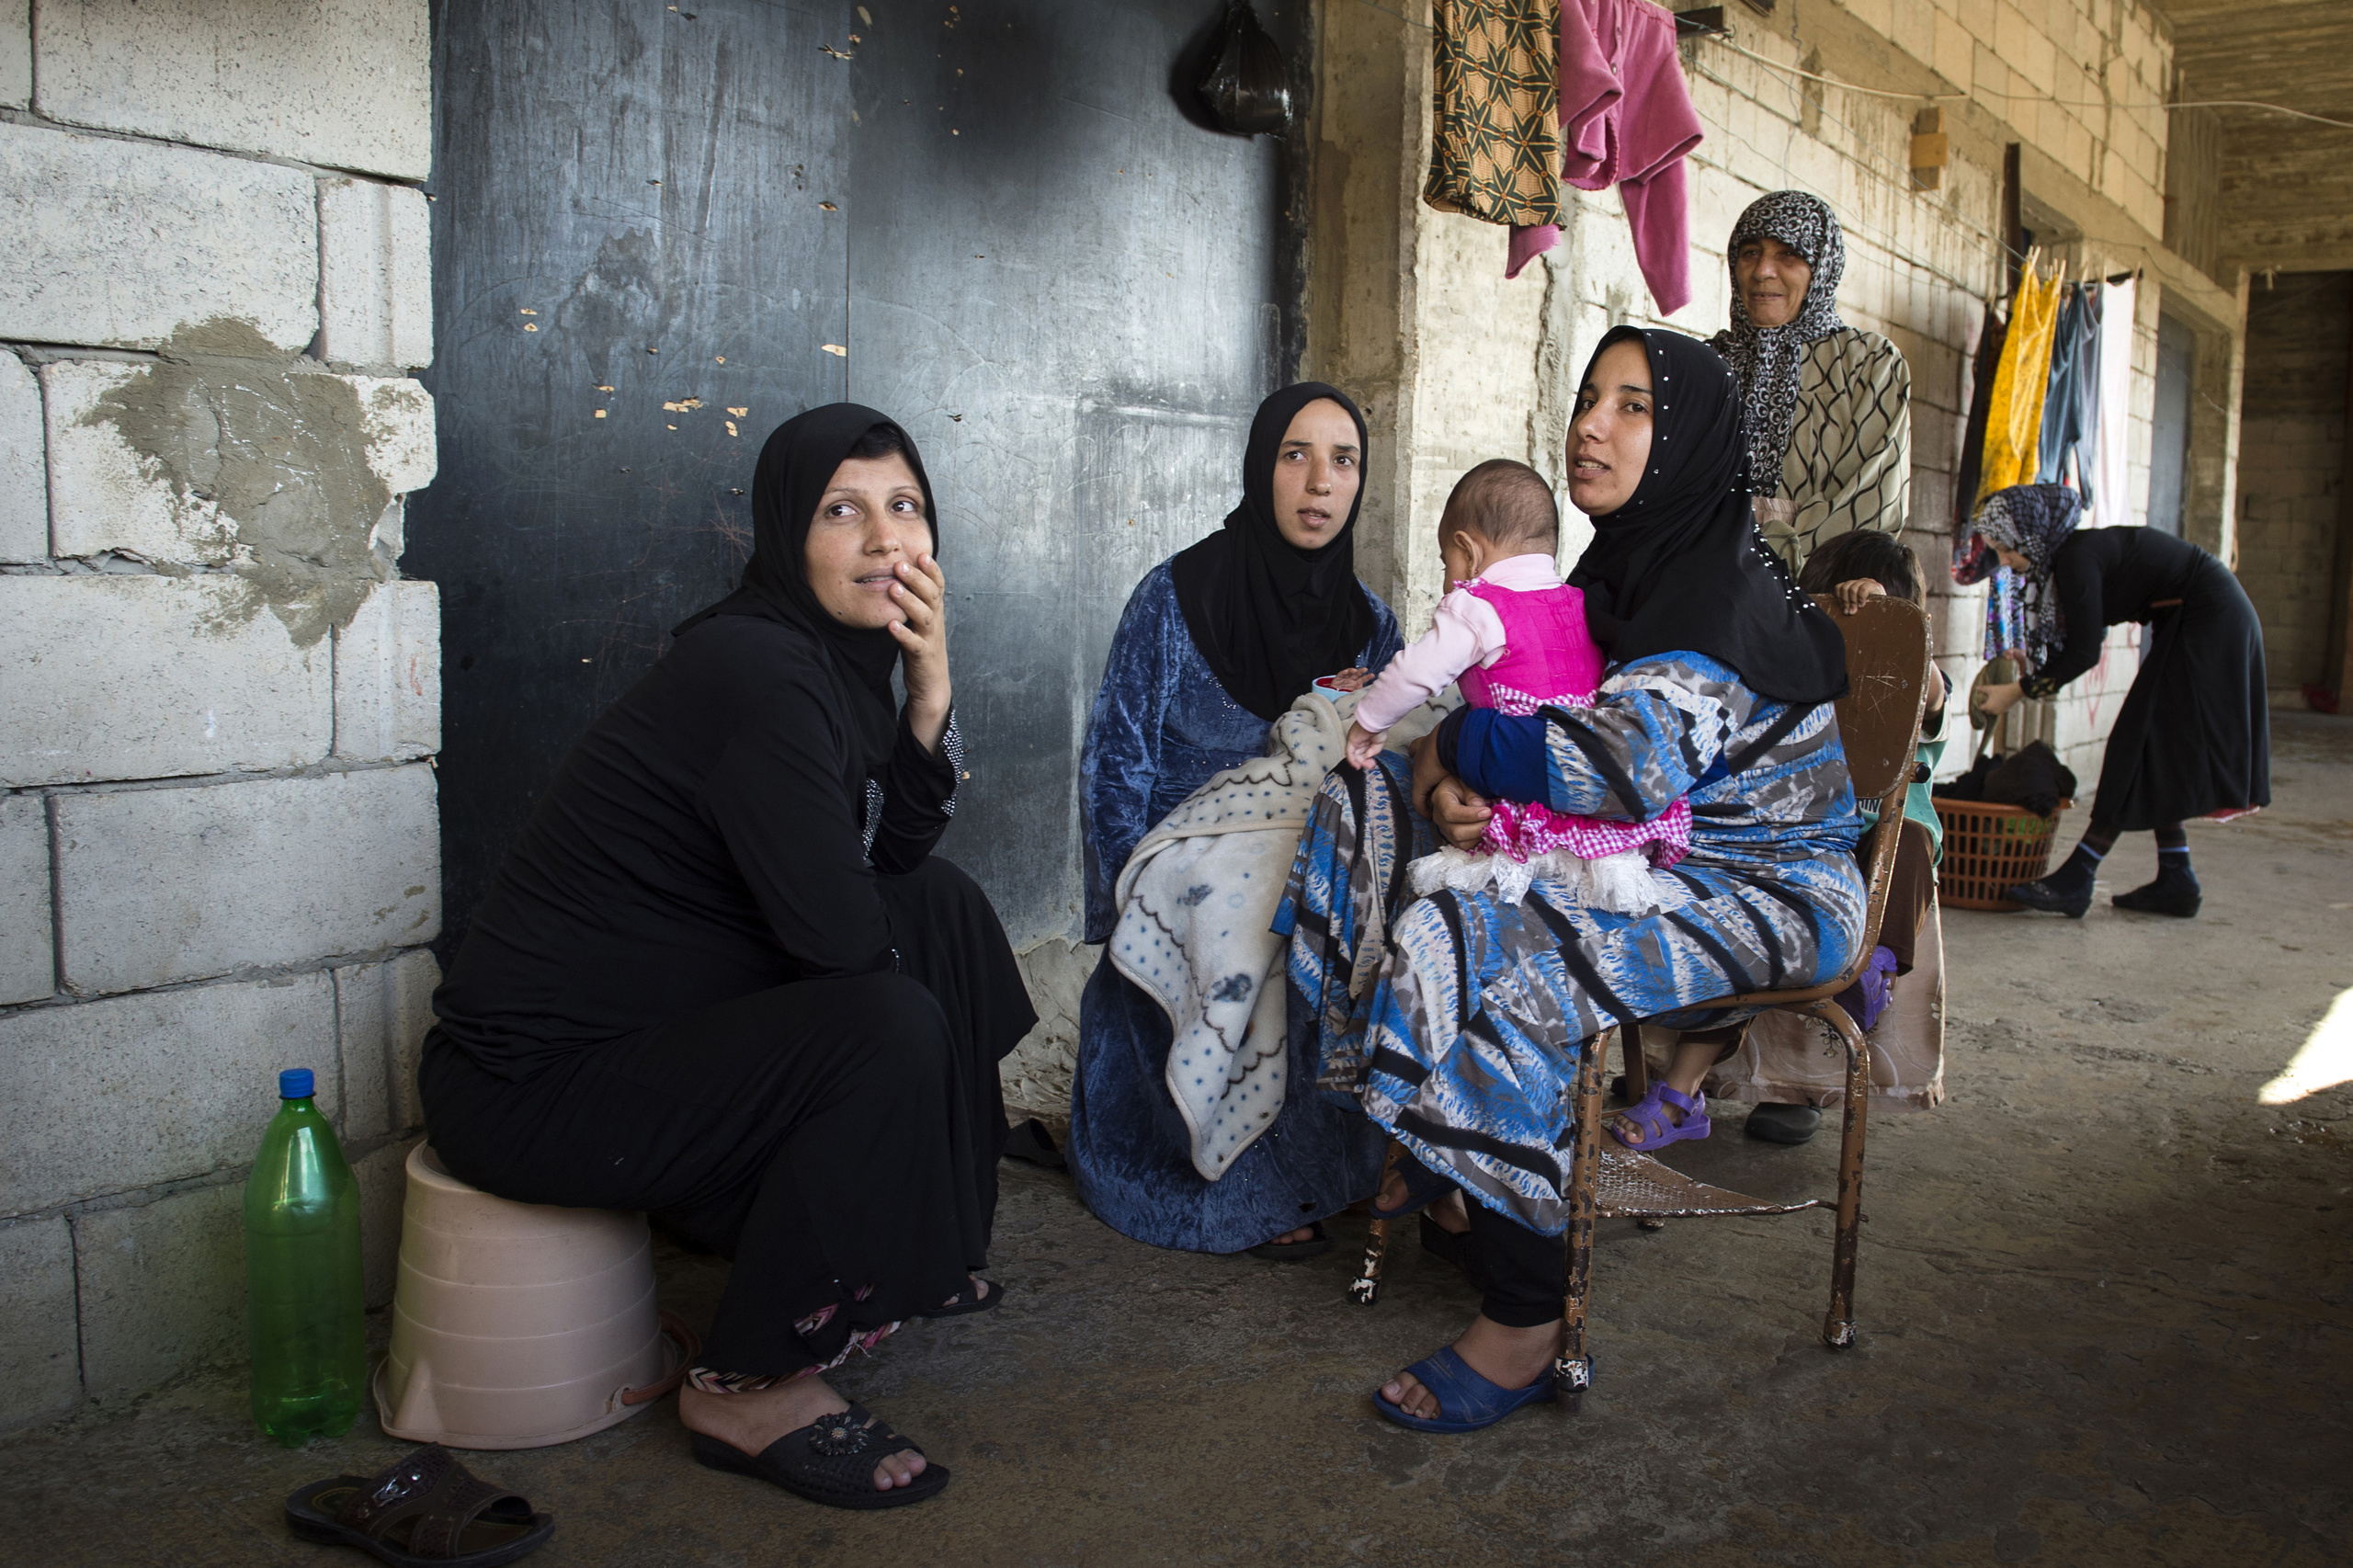 "Saida-Lebanon. Women inside an abandoned construction site occupied by Syrian refugees. This building, referred to as a ""collective shelter"", is owned by the Islamic University and financed by a Kuwaiti association. About 150 families live within it, all from the Syrian Daraa region. The refugees try to survive through public subsidies and underpaid labor. the Lebanese government will not allow traditional refugee camps in Lebanon, refugees are finding unusual places to live across the country, including unfinished homes, abandoned shopping malls and schools ……."